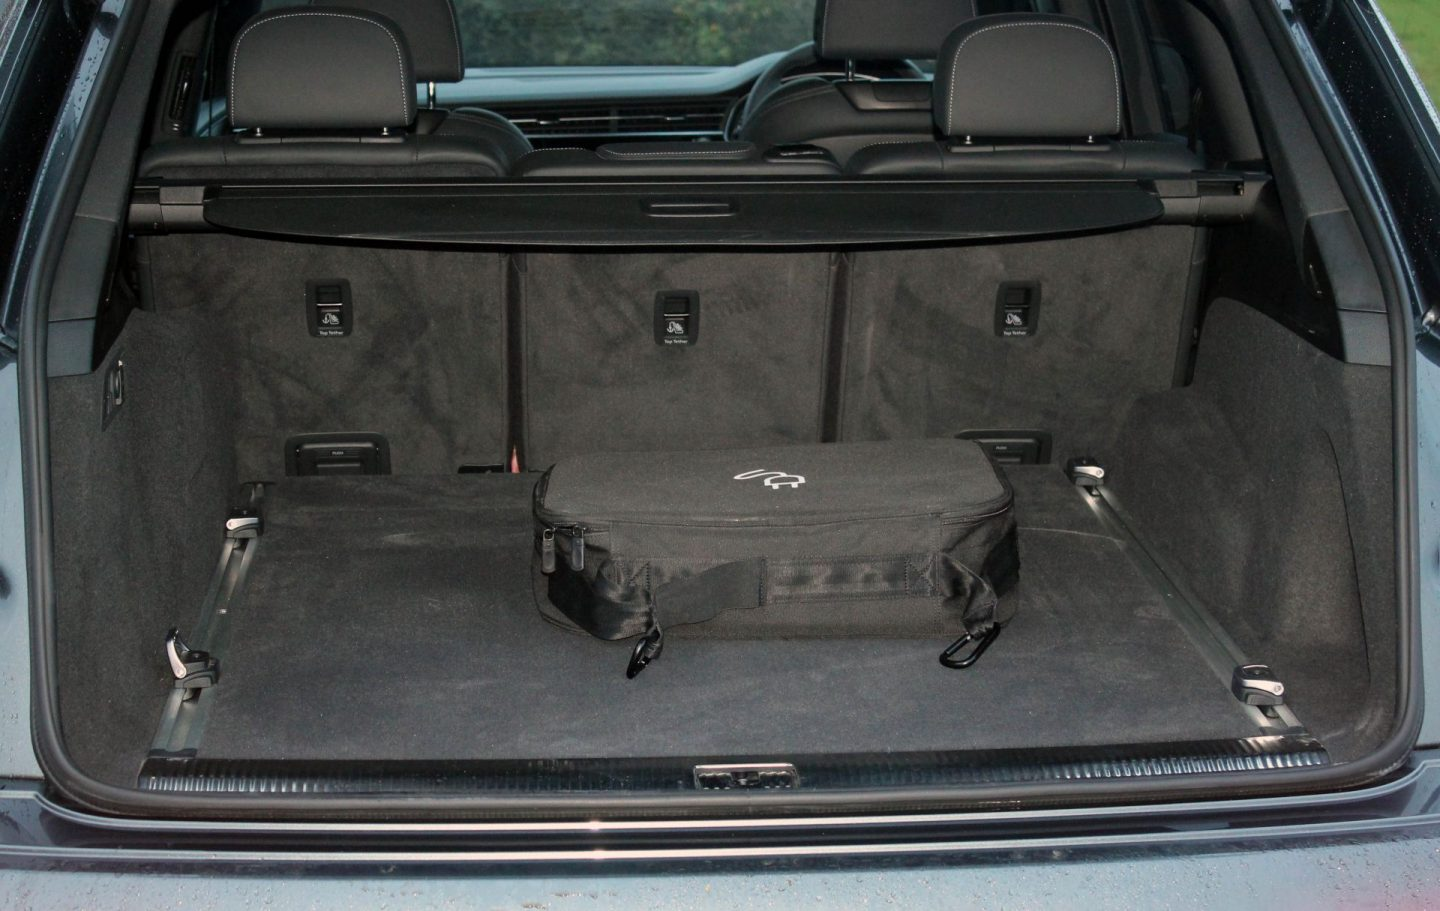 Open boot of a large SUV